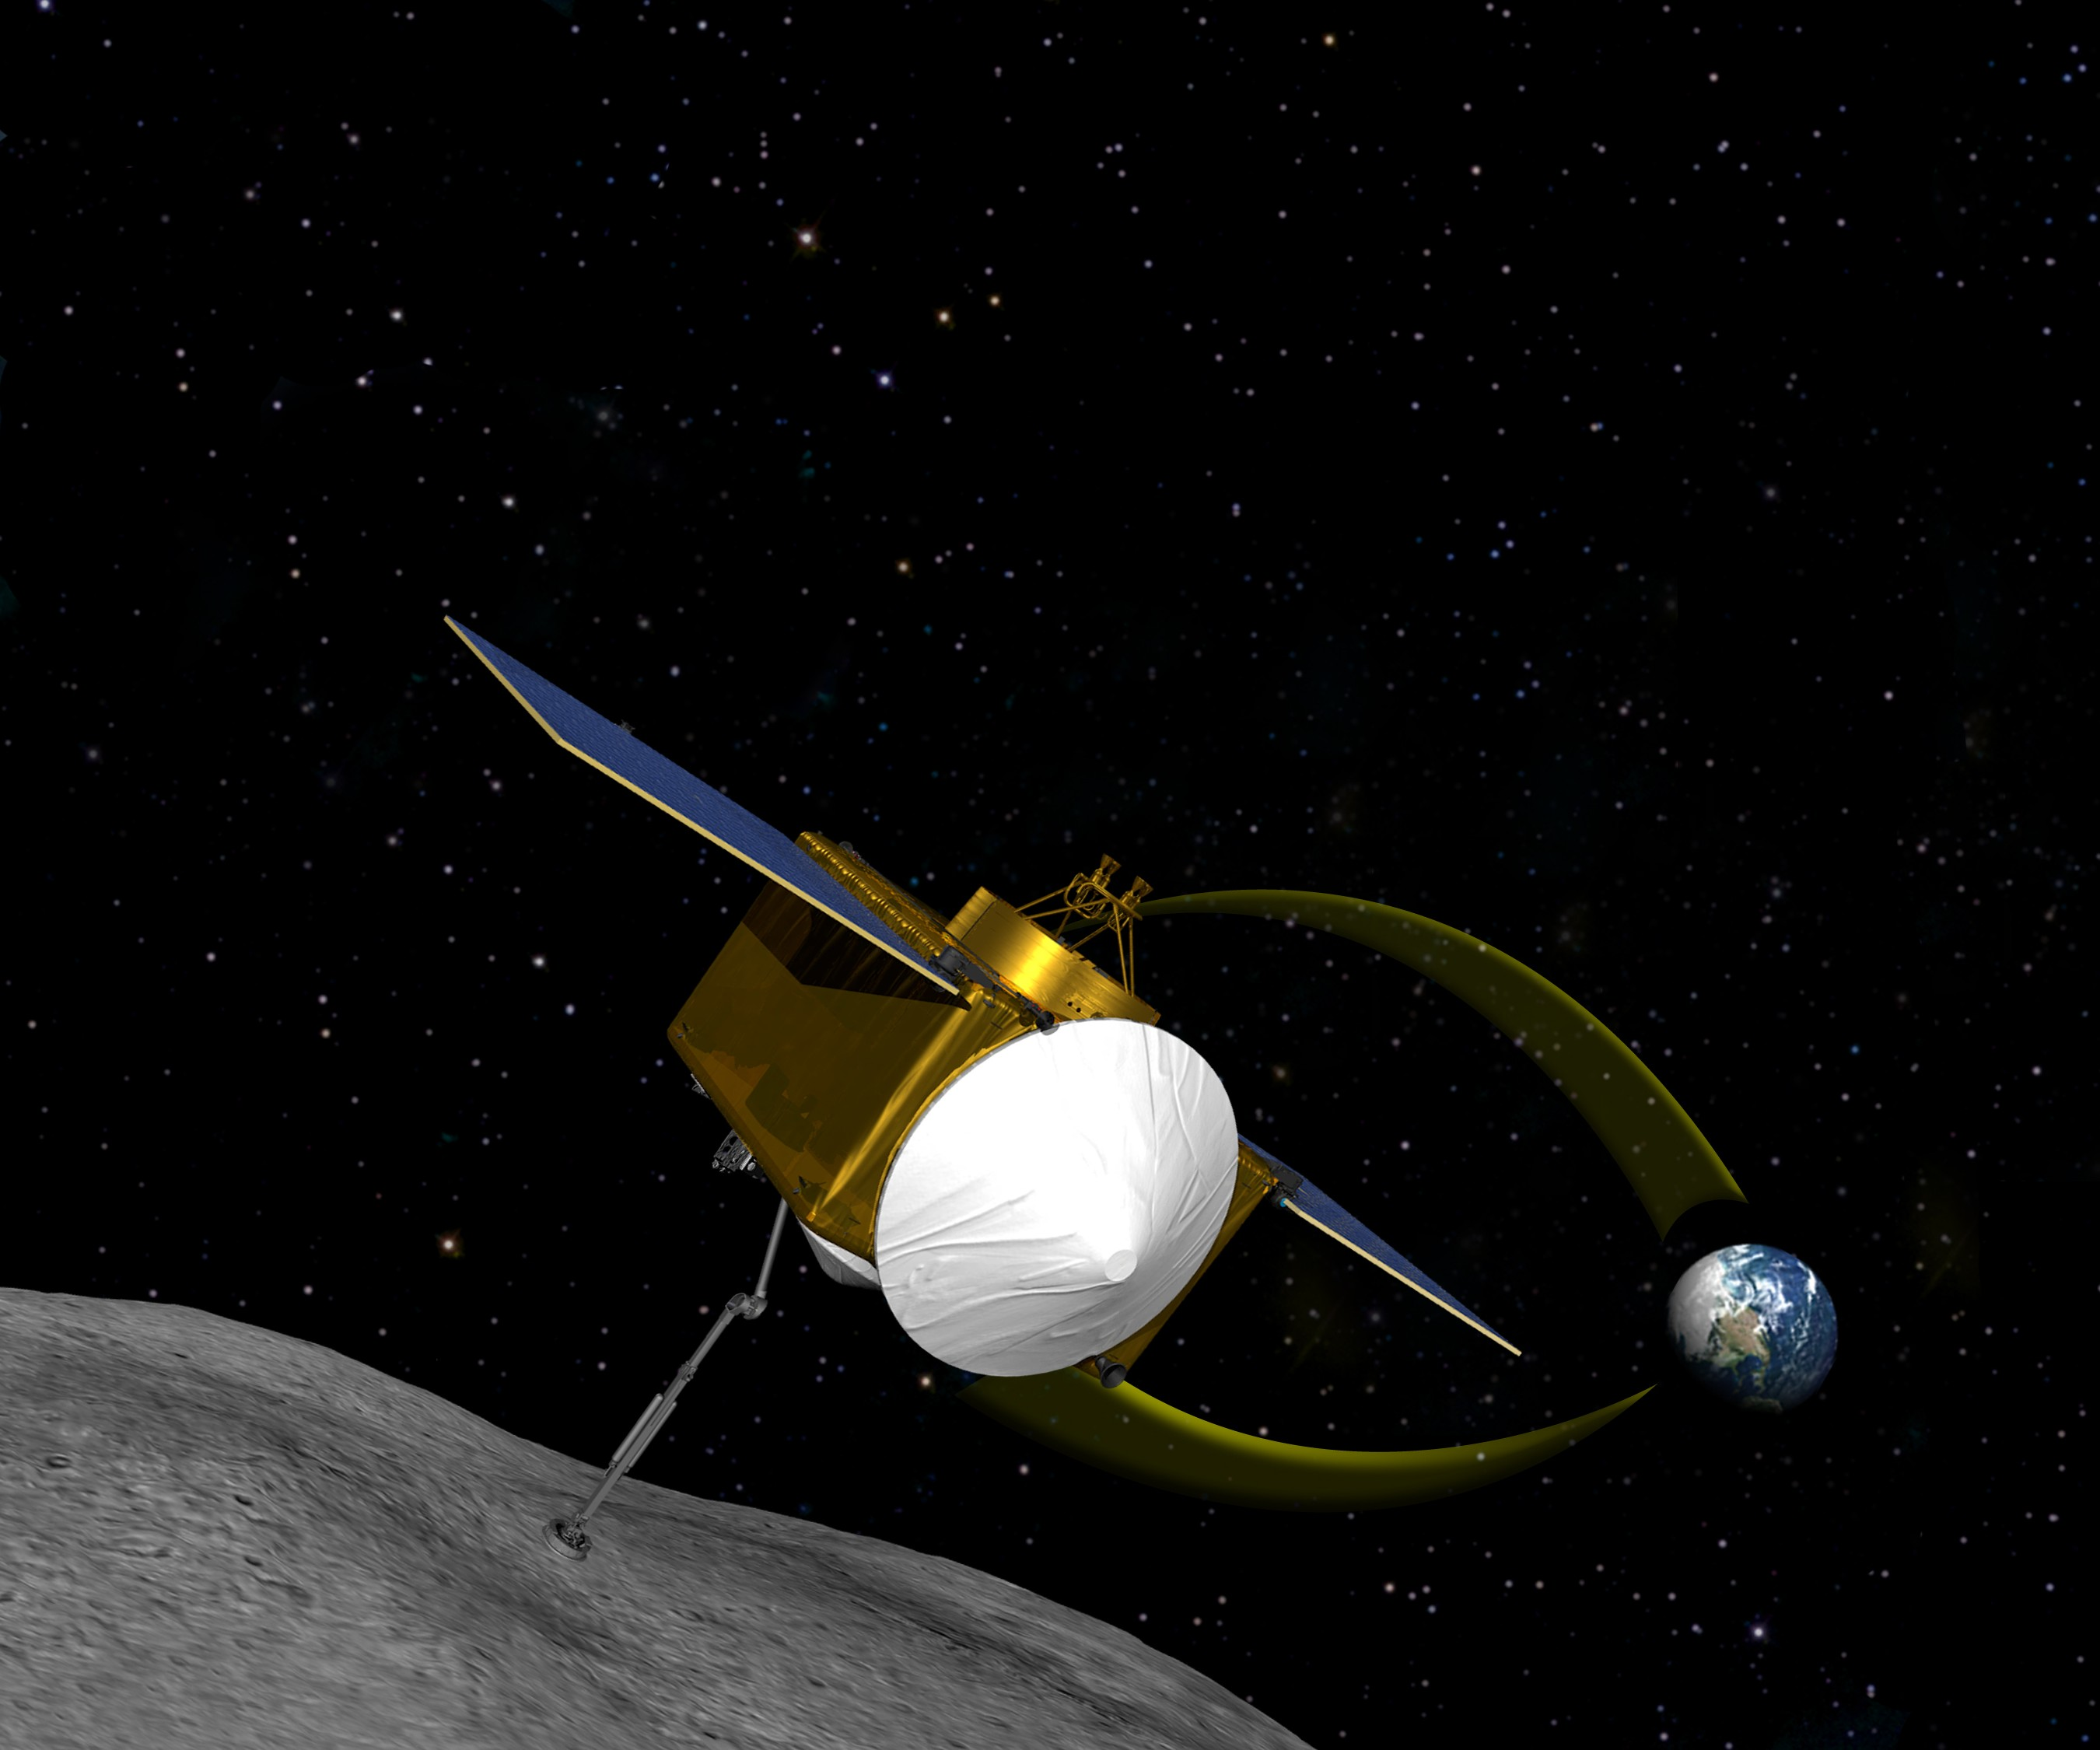 Us First Space Probe : Nasa selects osiris rex as first us asteroid sampling mission